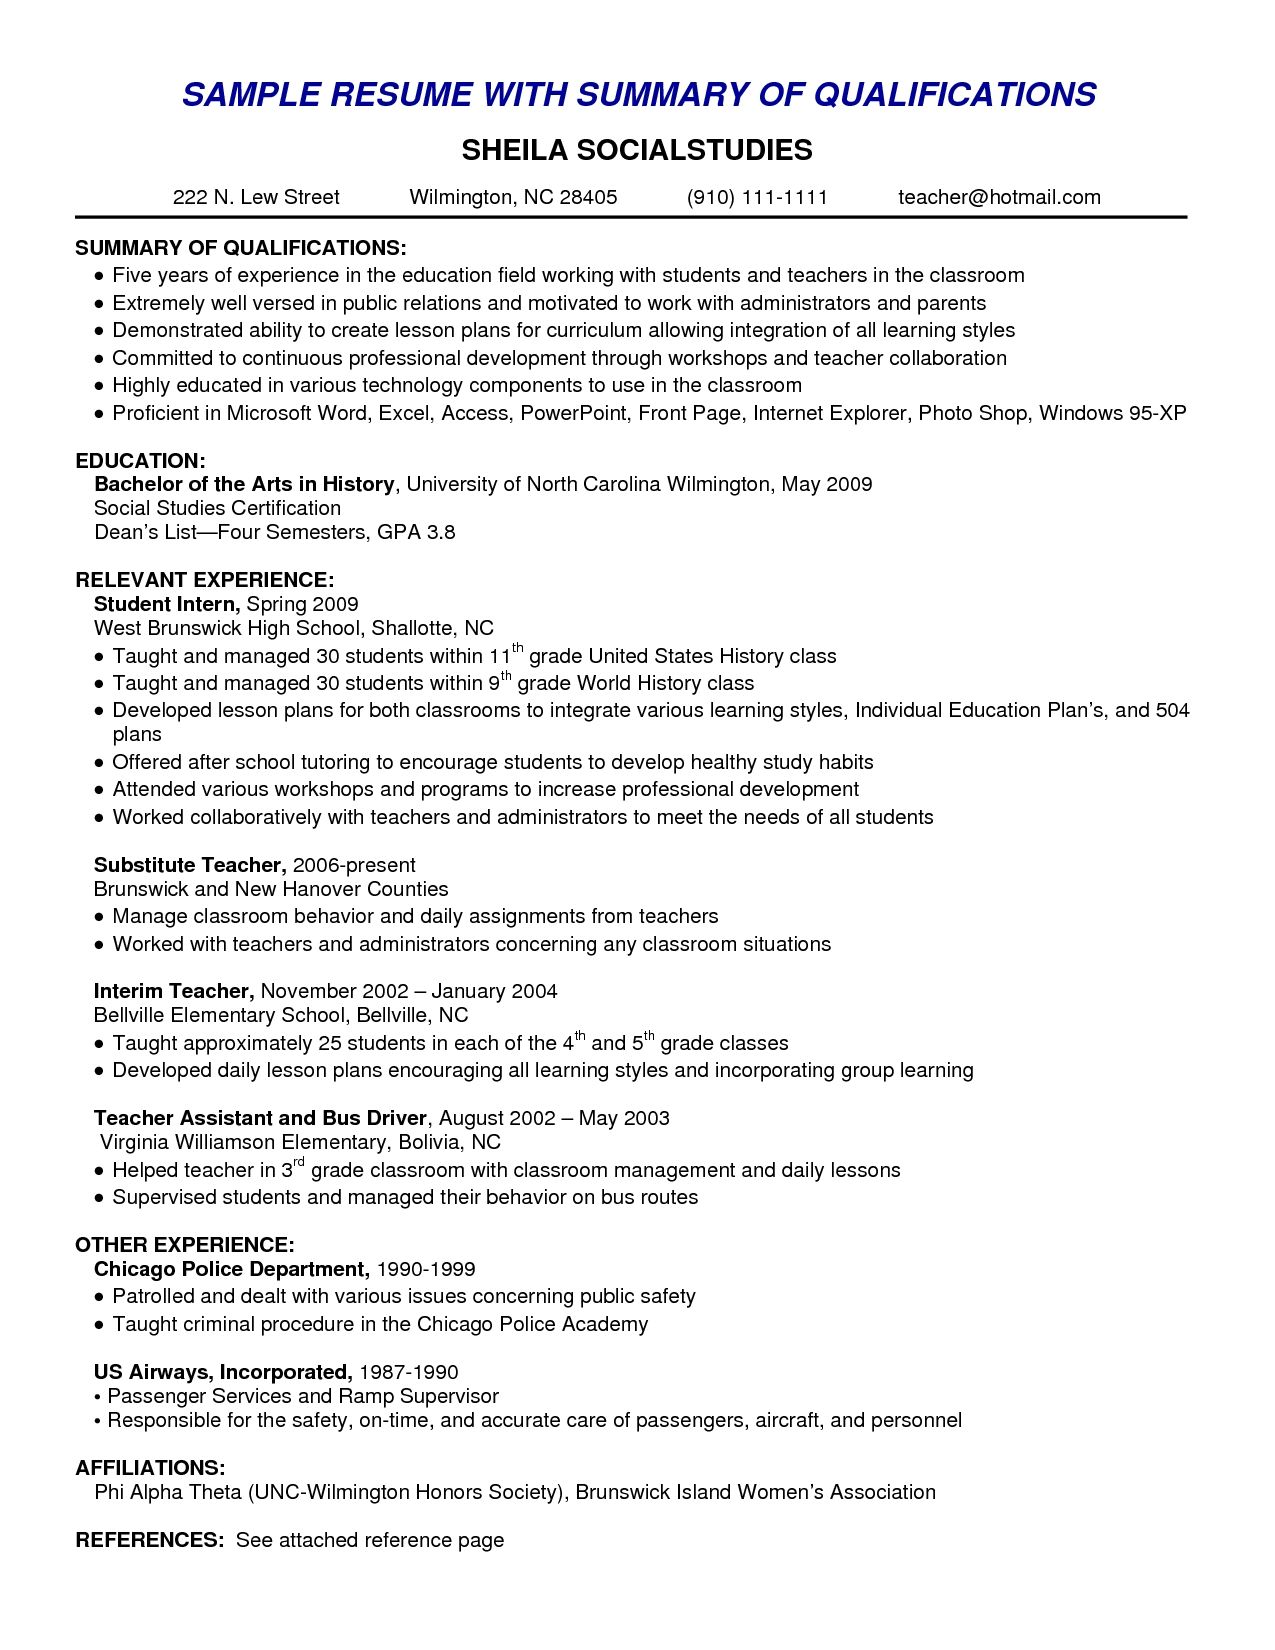 Resume Example Of Qualifications And Skills For Resume resume skills summary examples example of for amusing skills